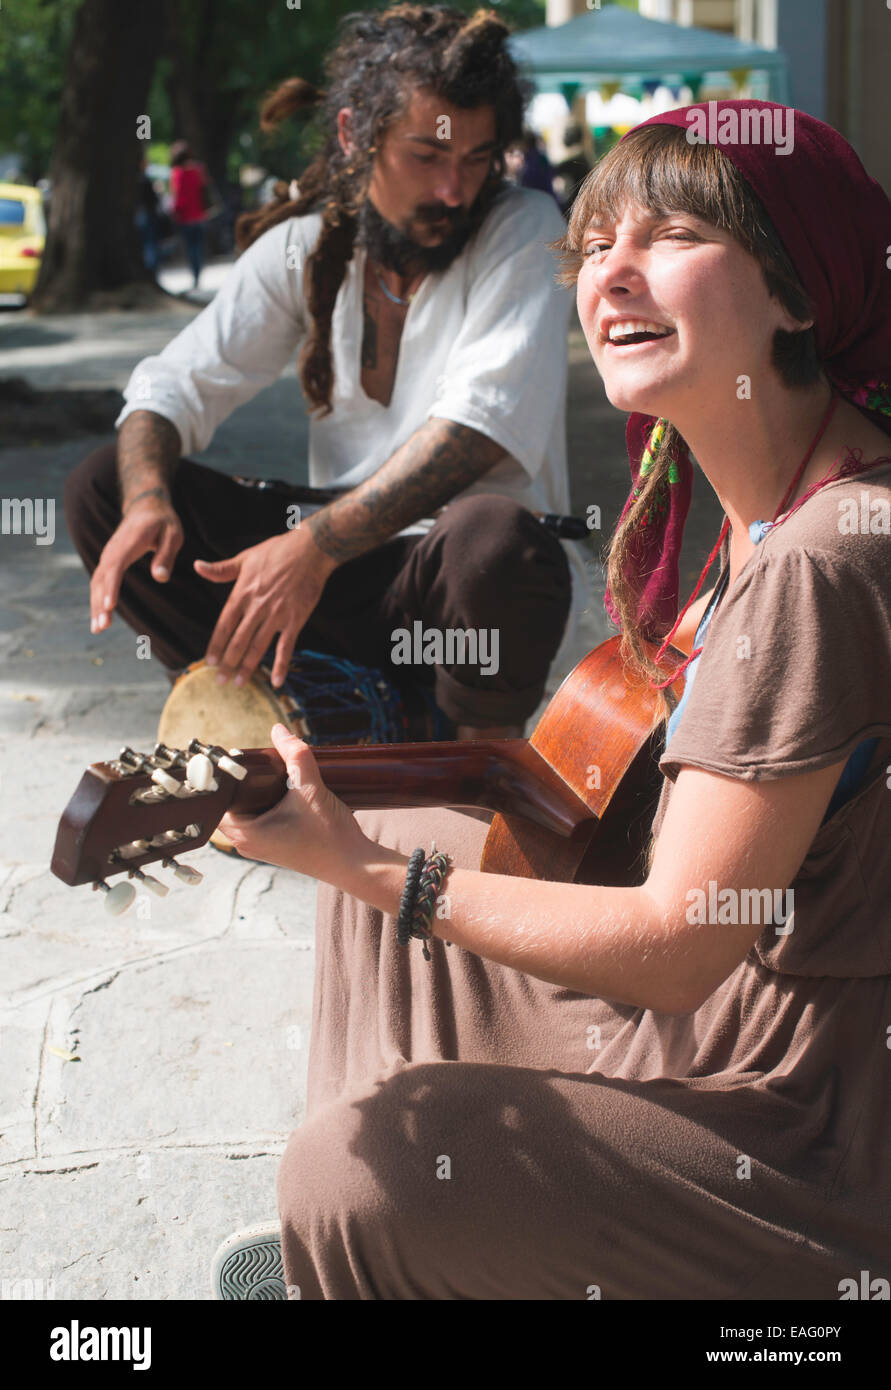 Street musicians playing guitar and drum - Stock Image